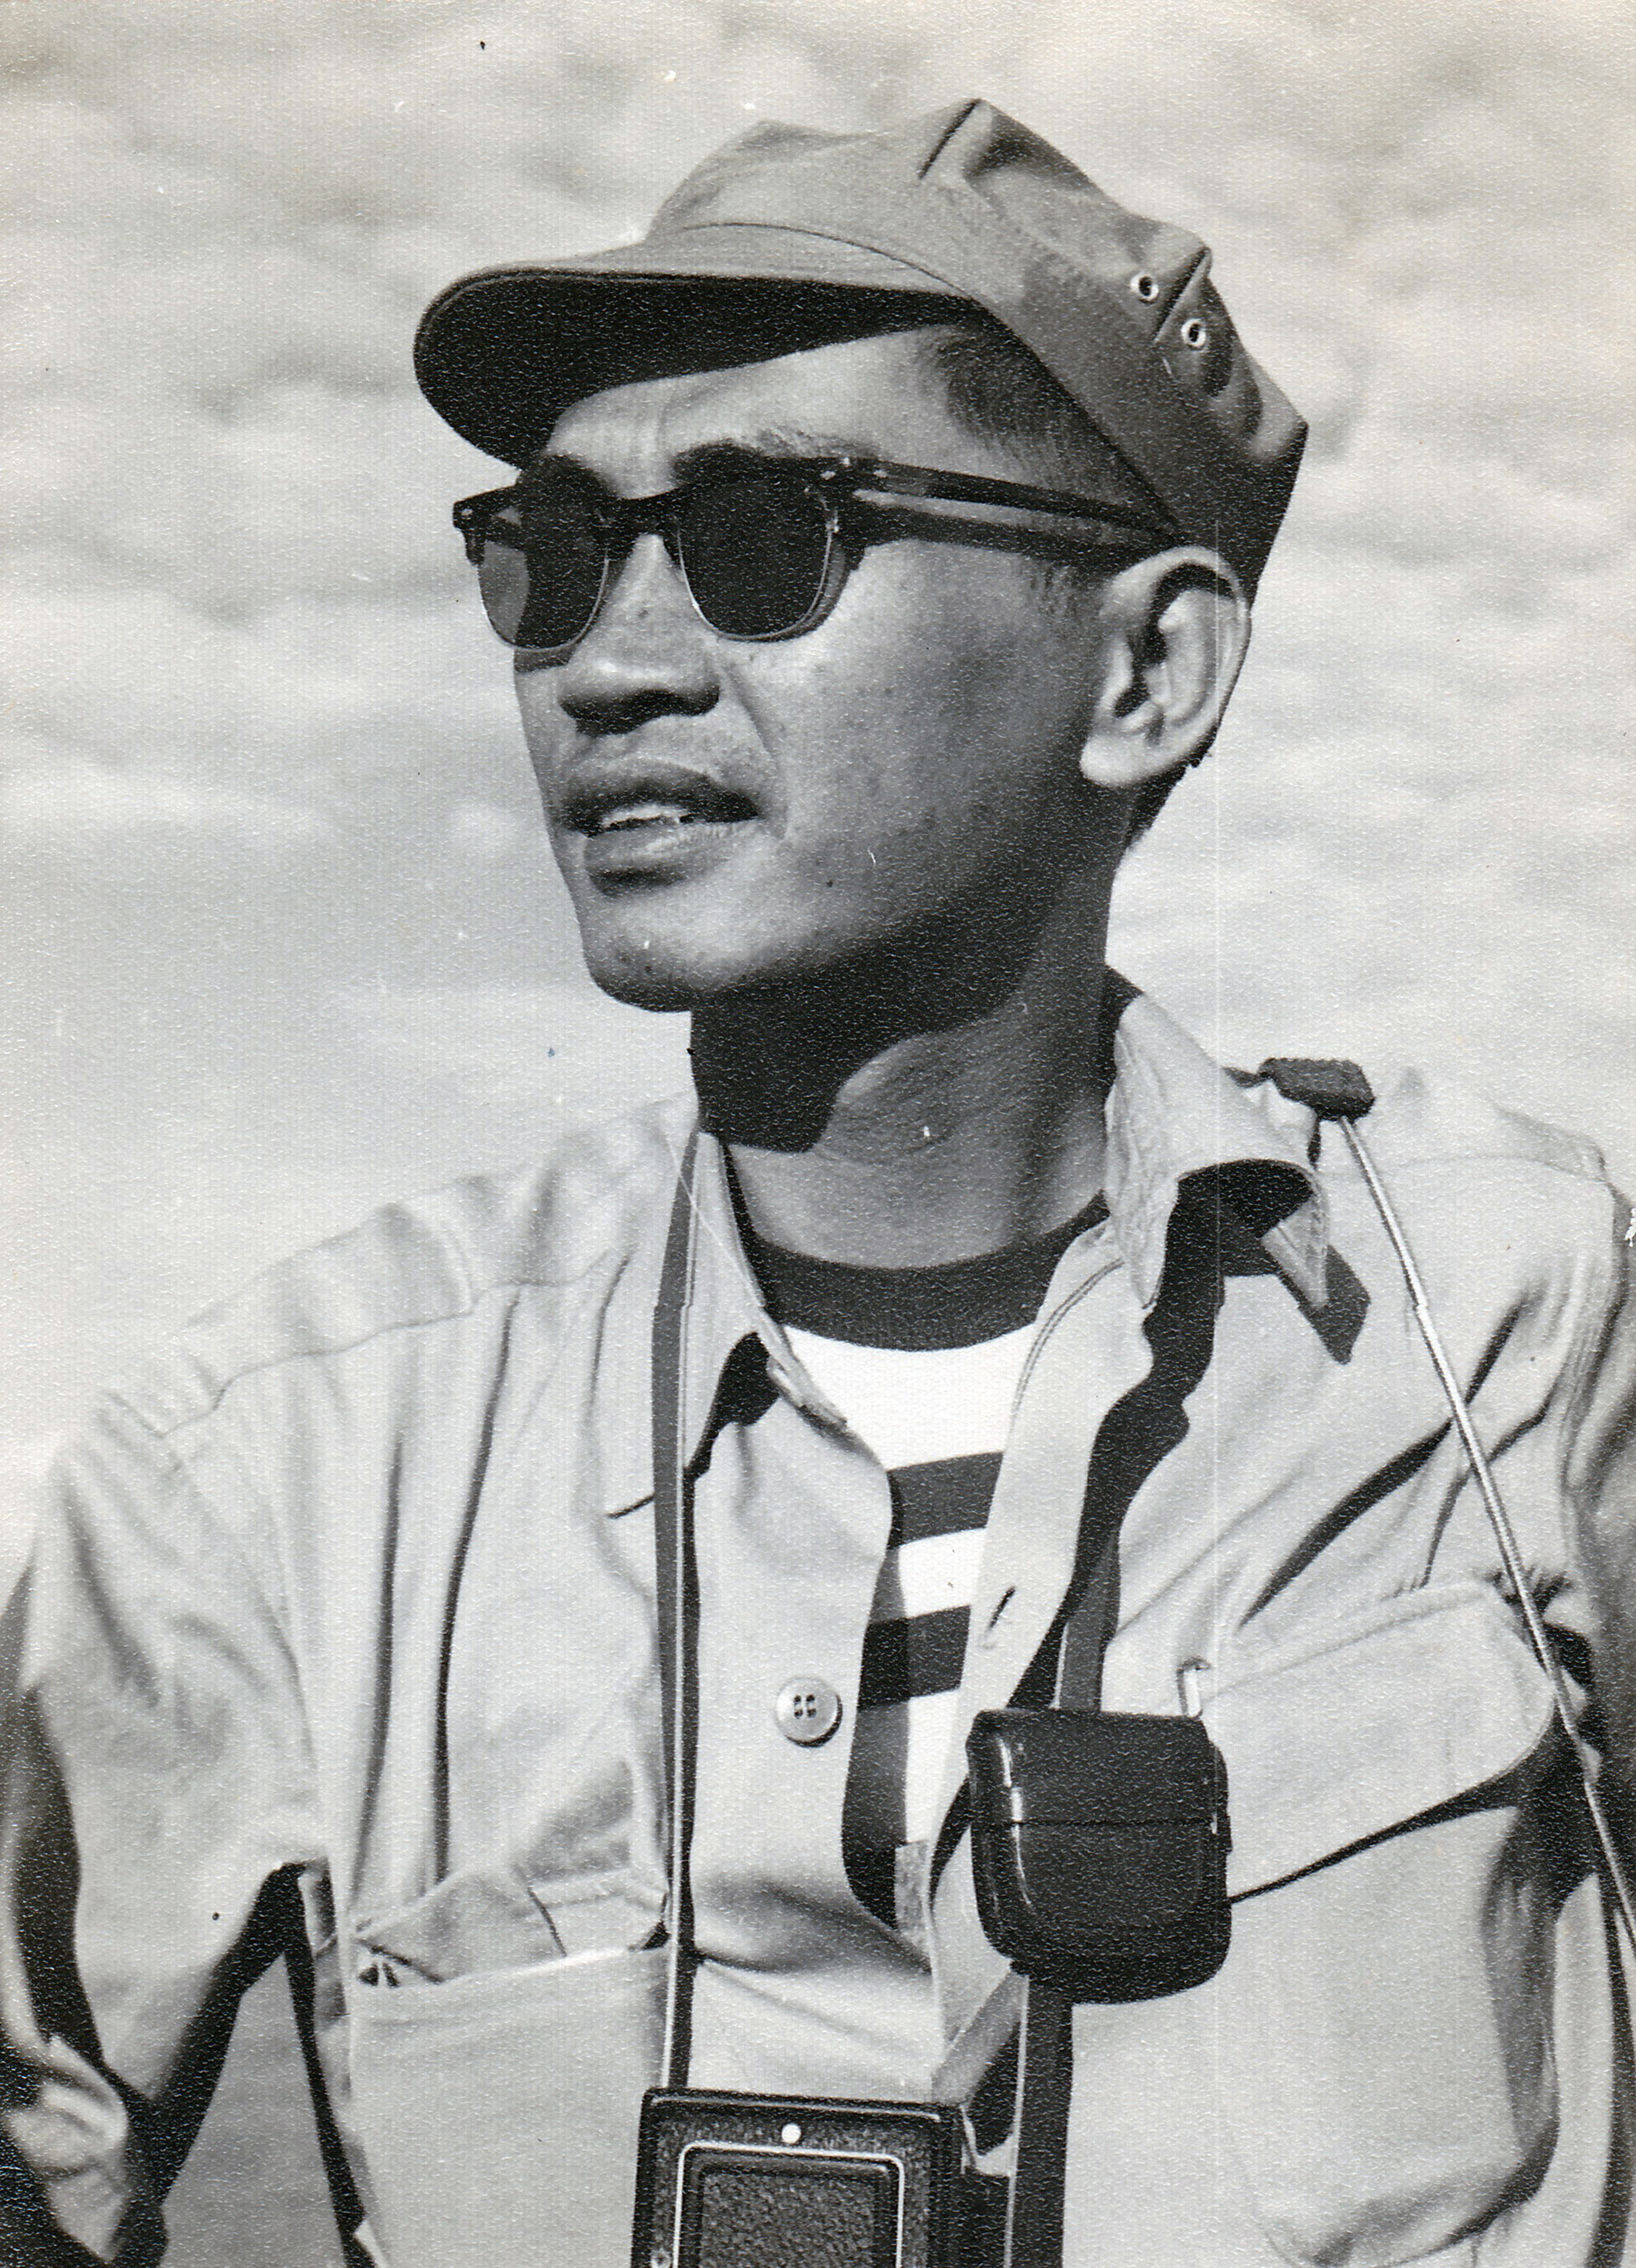 Le Minh Thai on a navy ship in South Vietnam in the 1950s.